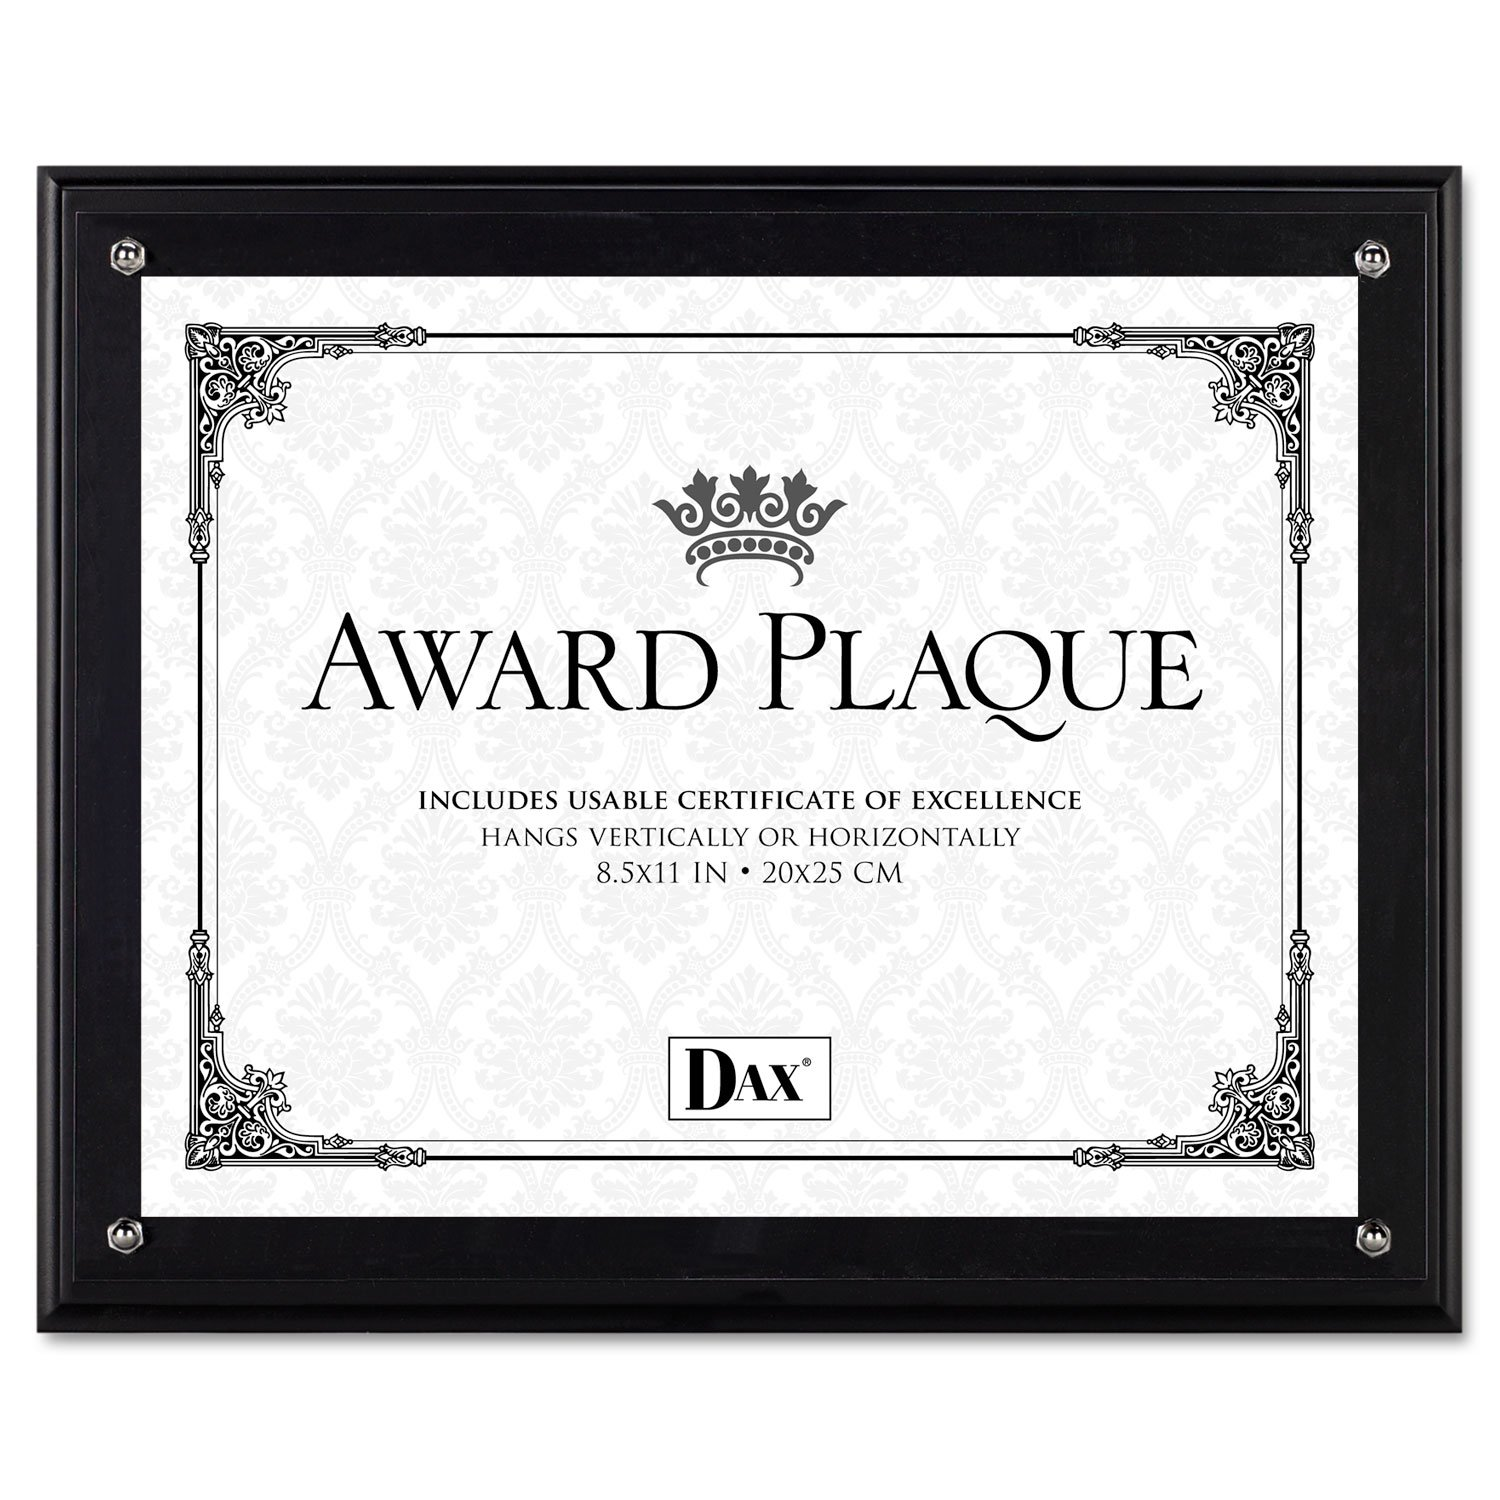 DAX N15908NT Award Plaque, Wood/Acrylic Frame, Up to 8 1/2 x 11, Black